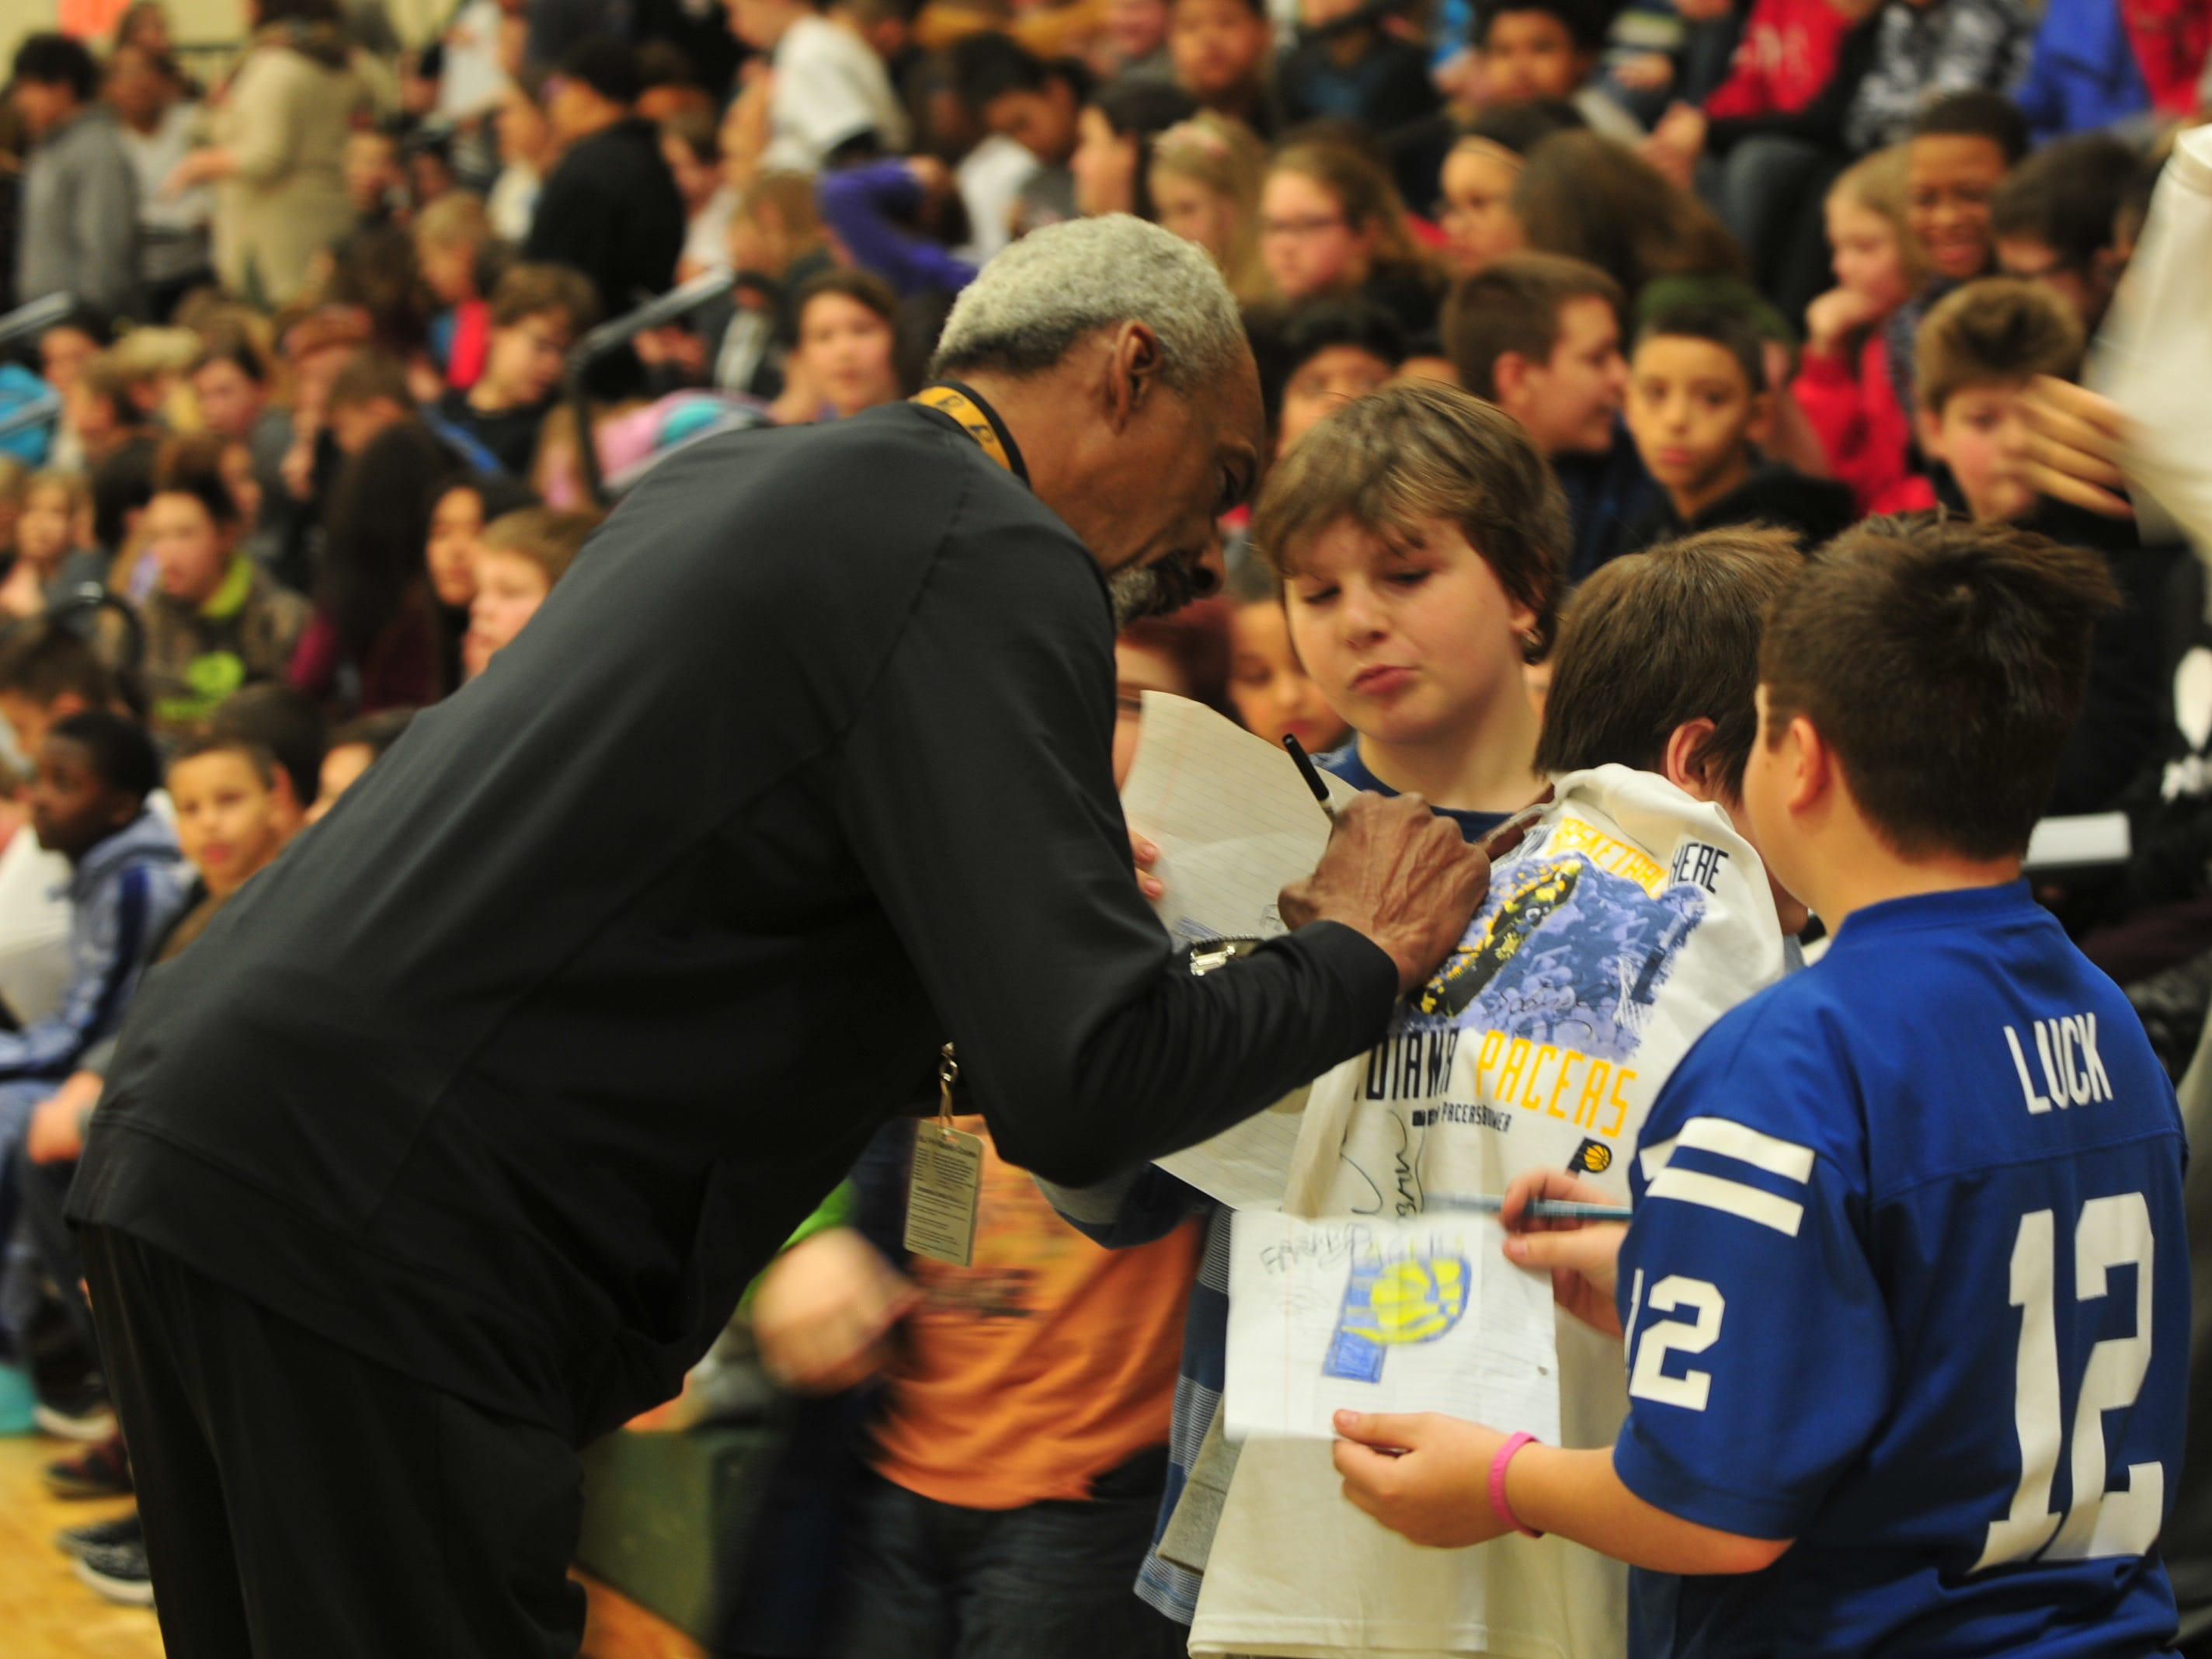 Former Indiana Pacers player Darnell Hillman autographs a T-shirt Wednesday for a Dennis Intermediate School student.